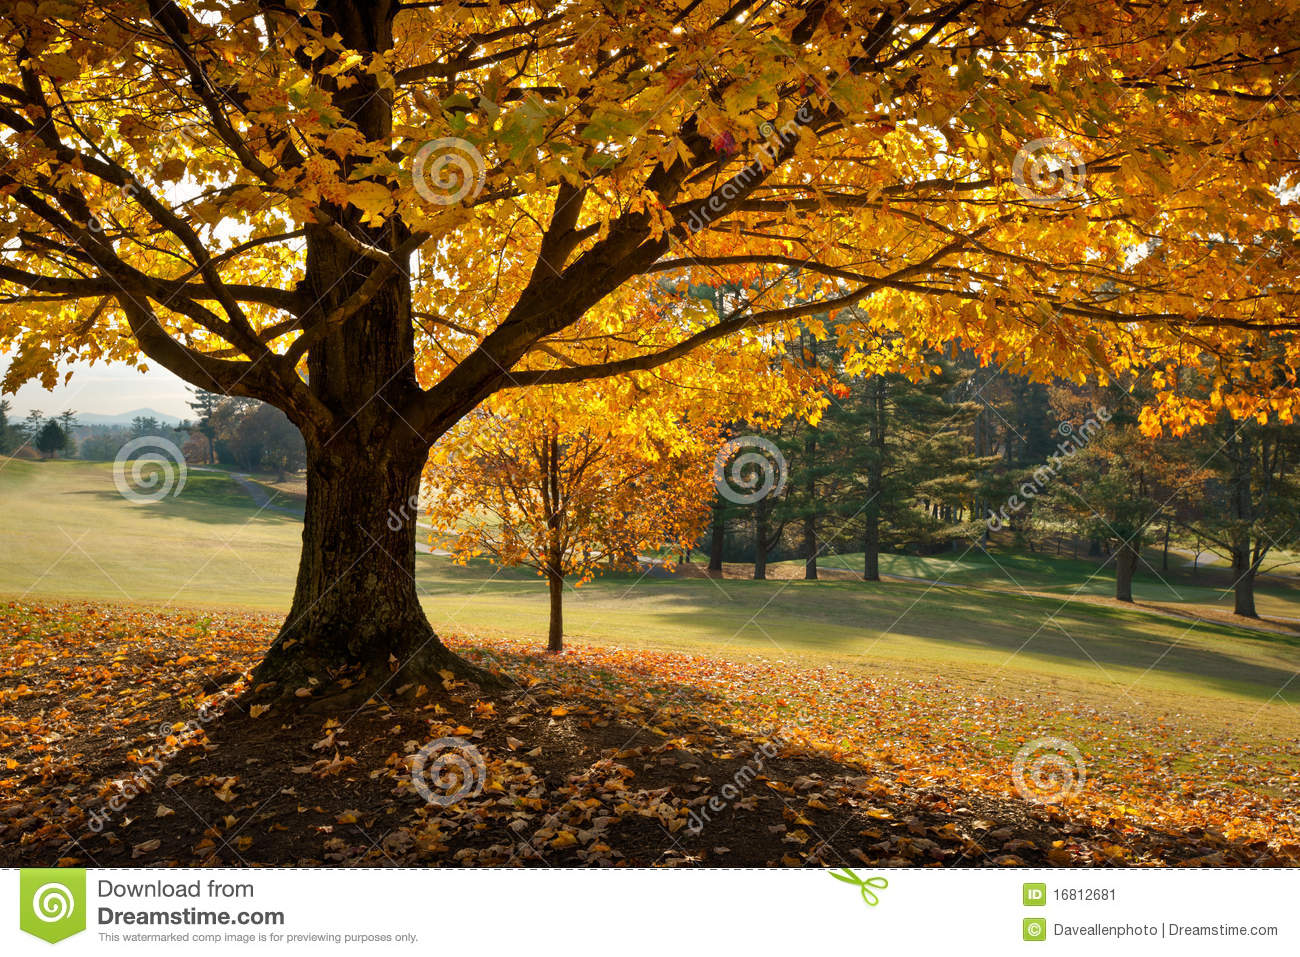 Golden Fall Foliage Autumn Yellow Maple Tree